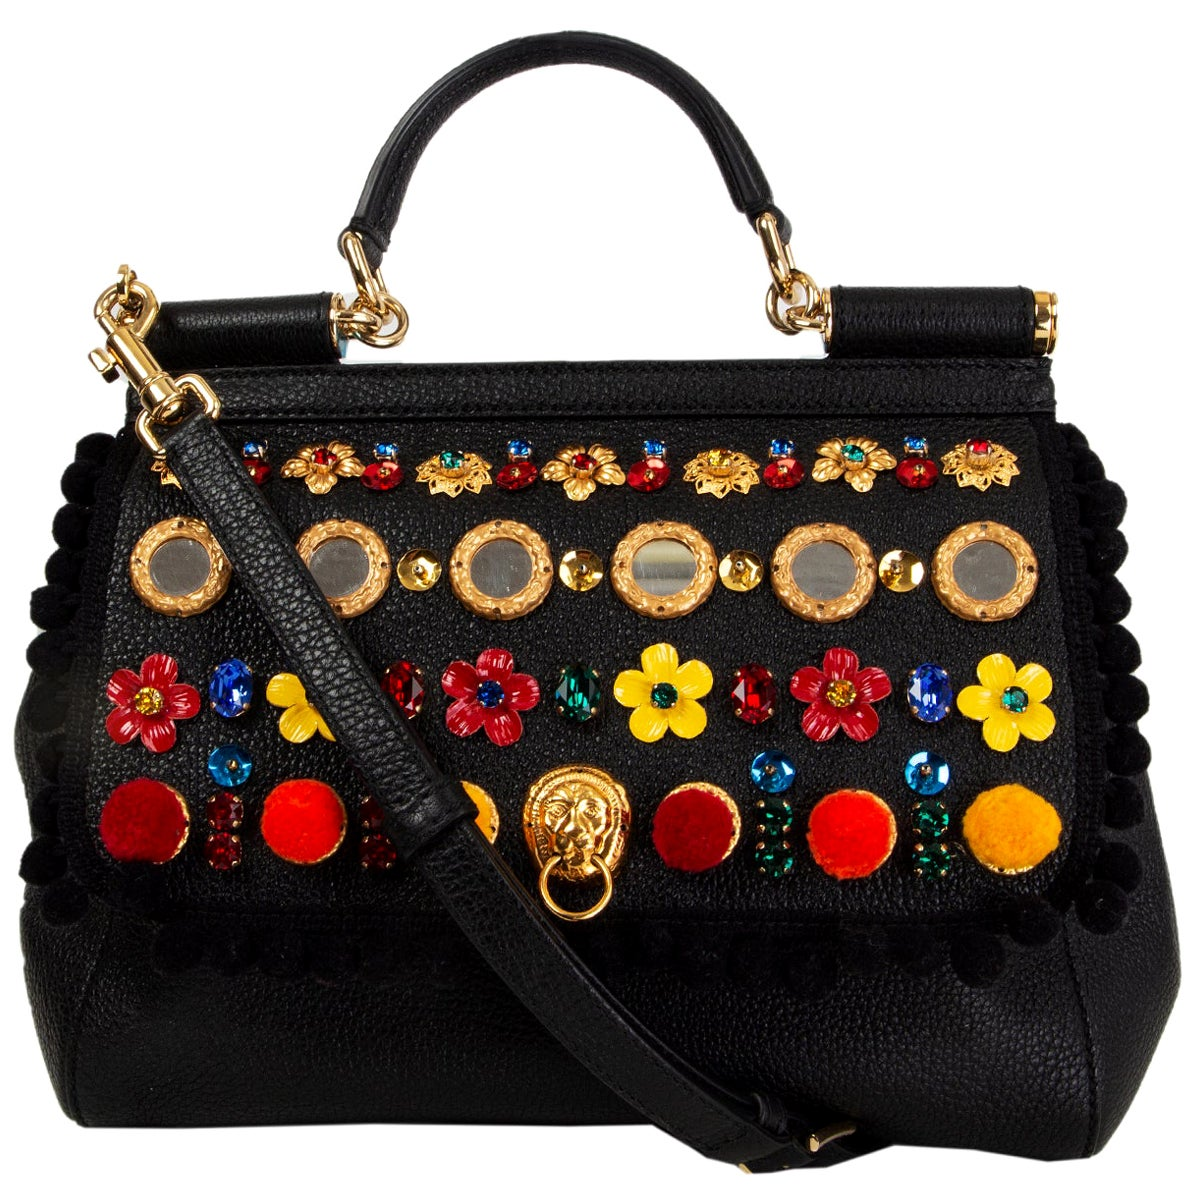 DOLCE & GABBANA black leather EMBELLISHED SICILY MEDIUM Shoulder Bag